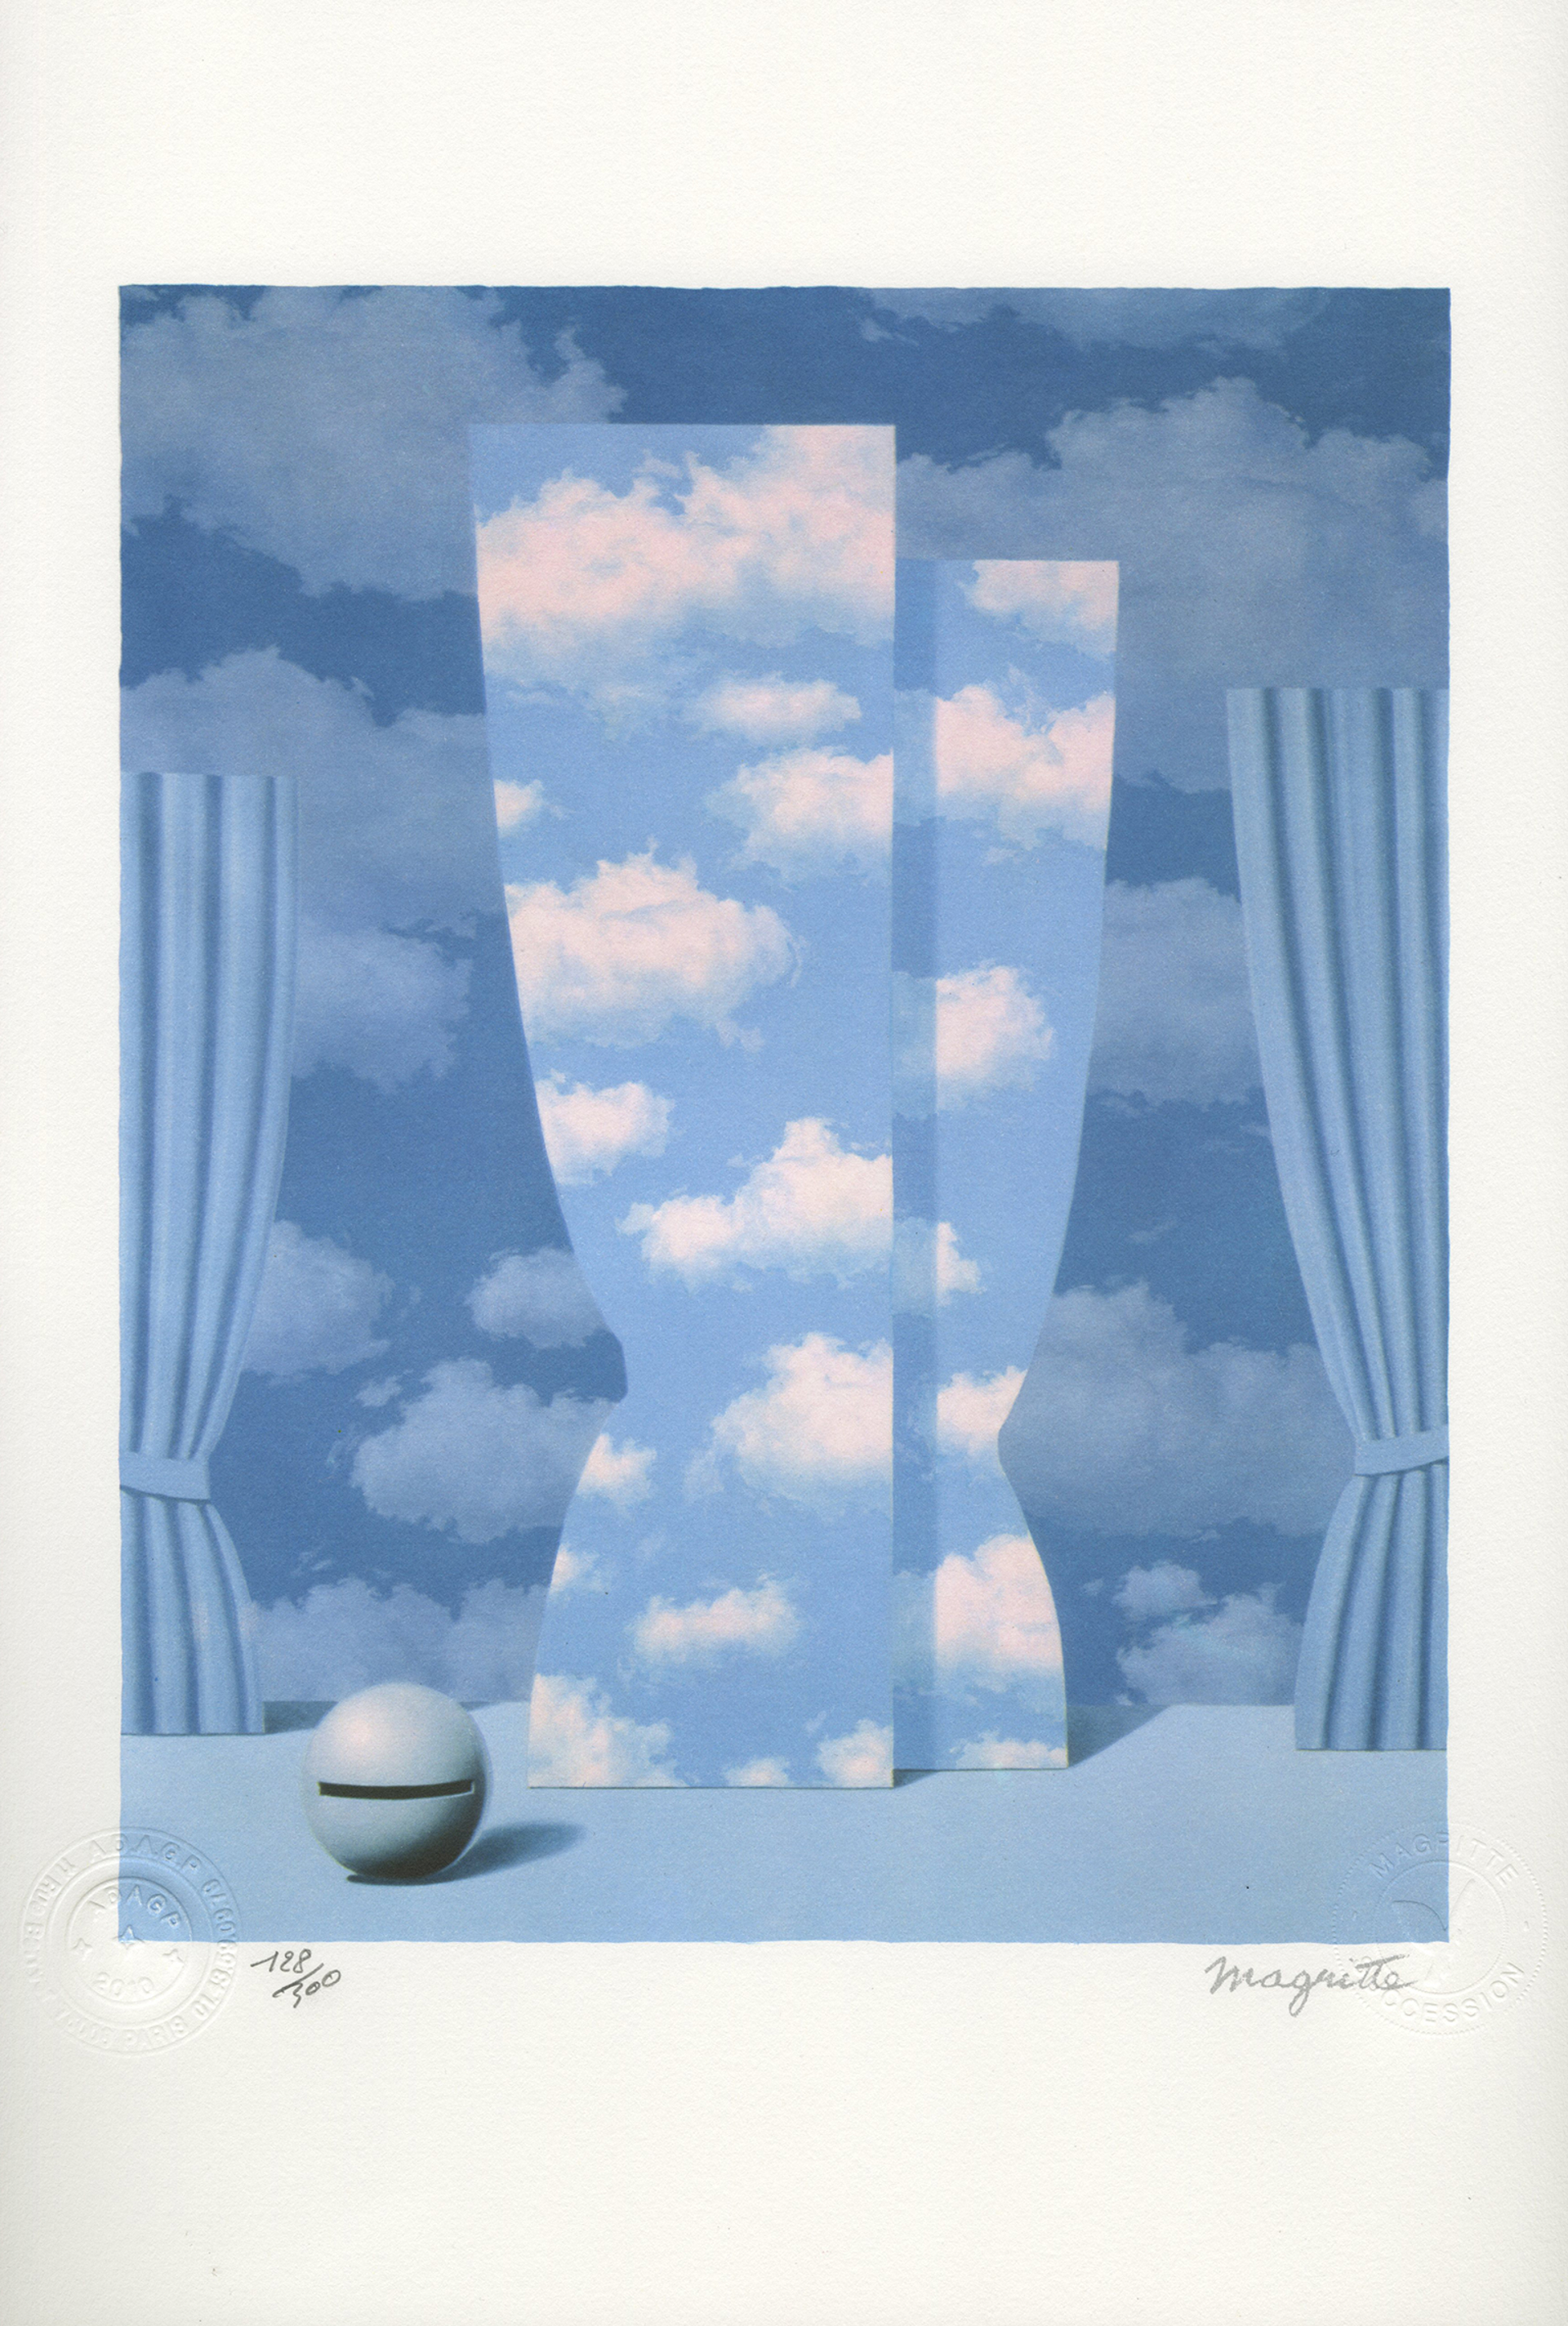 La Peine perdue (The Wasted Effort) by Rene Magritte